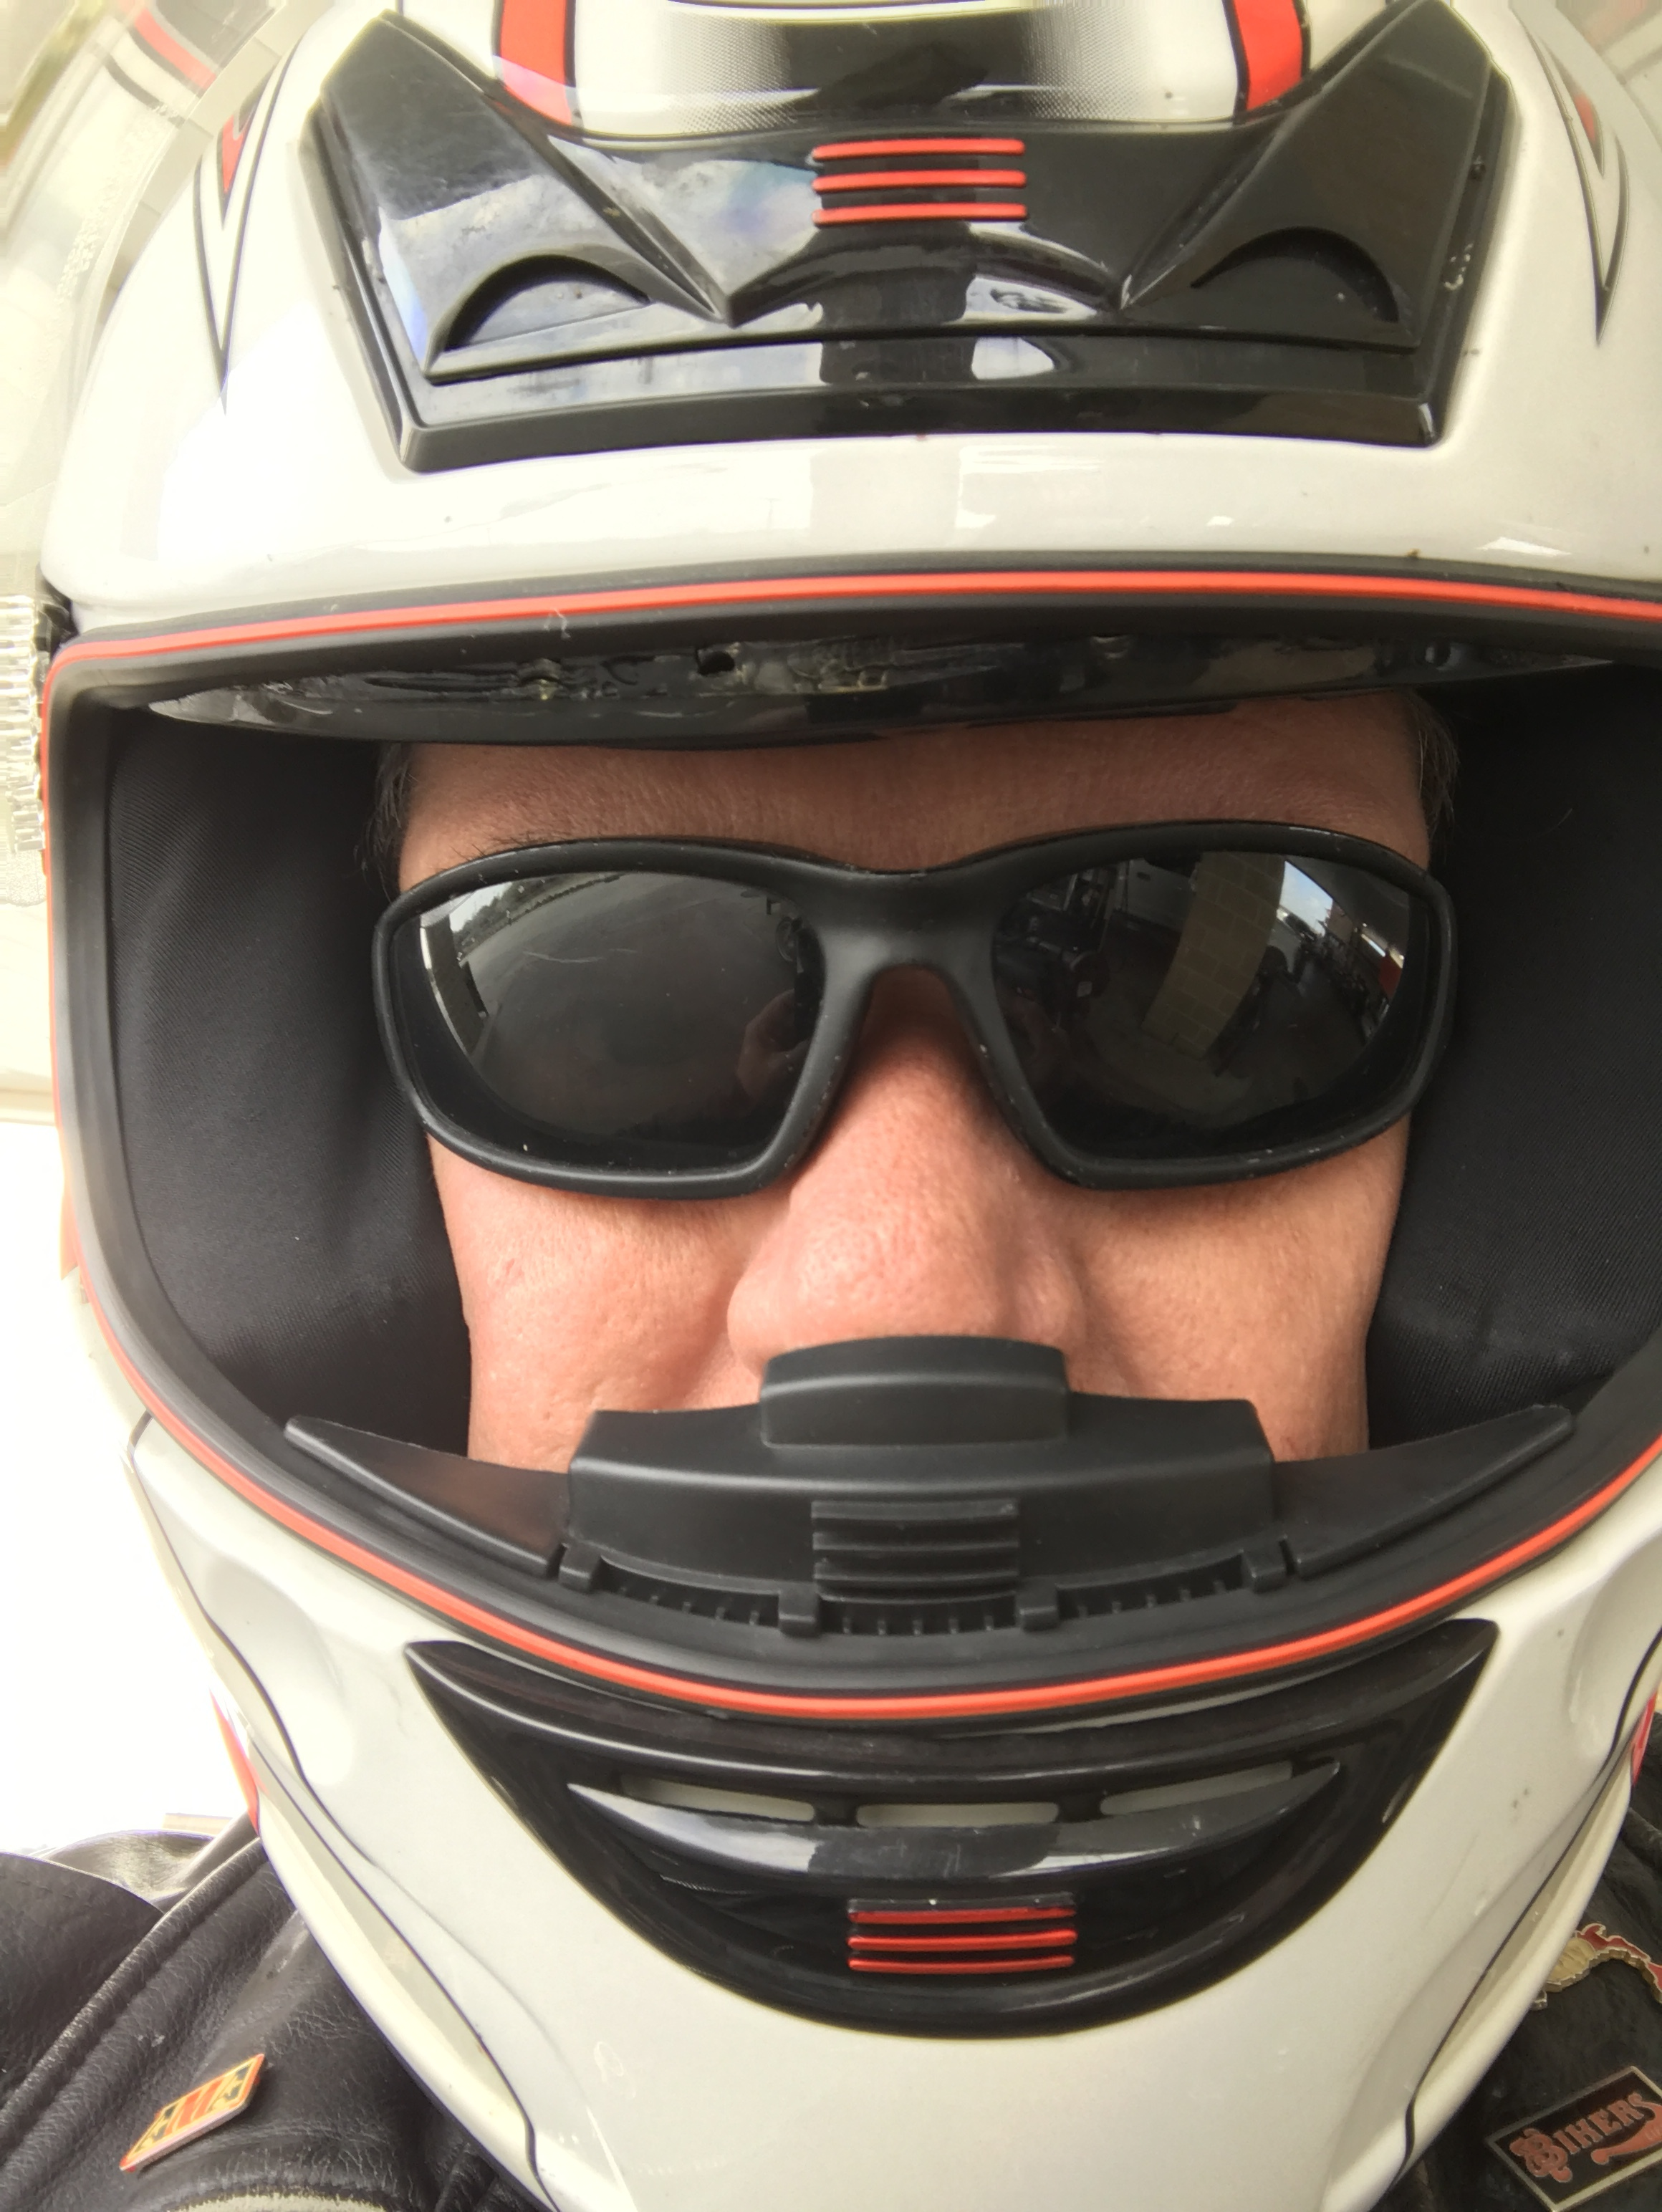 Yes, I wore a helmet this trip because the wind was CRAZY!